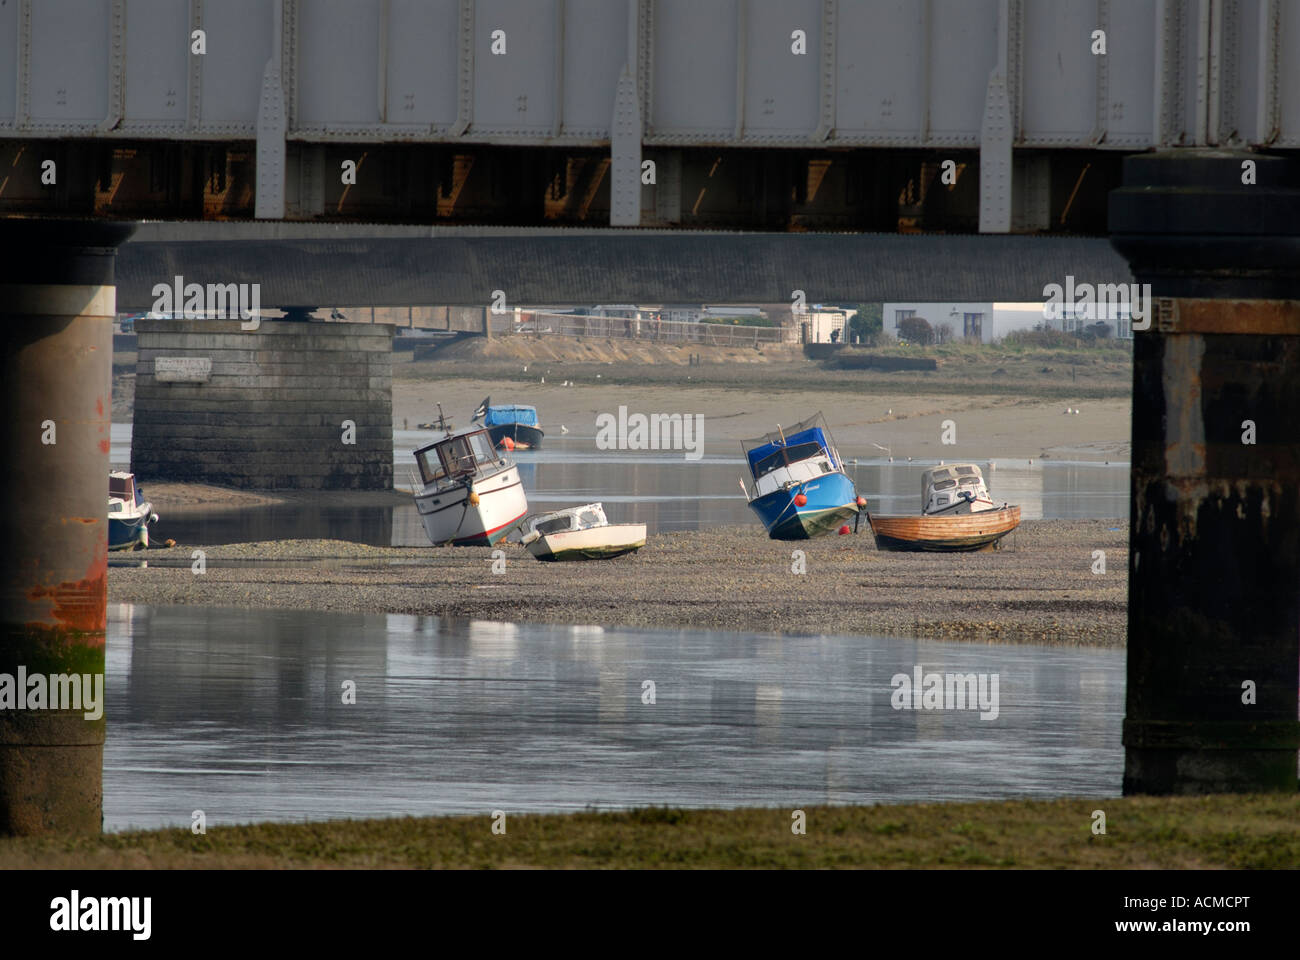 Boats on the River Adur at Shoreham by Sea West Sussex UK Picture framed by columns on railway bridge Stock Photo